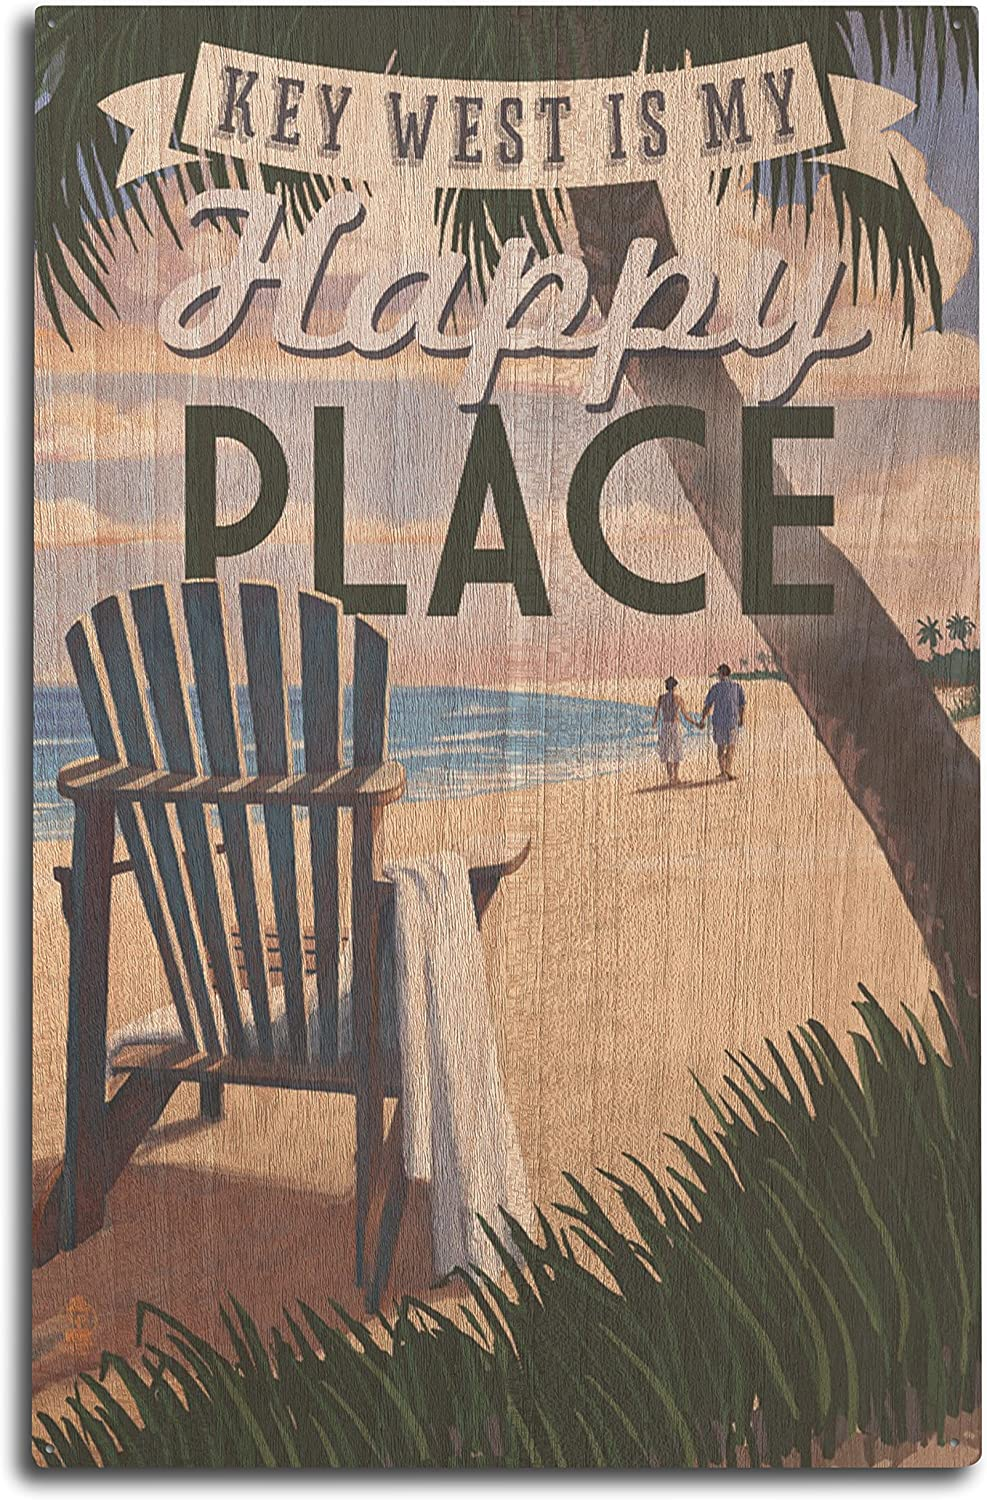 Lantern Press Key West, Florida is My Happy Place - Adirondack Chairs and Sunset - Florida (10x15 Wood Wall Sign, Wall Decor Ready to Hang)